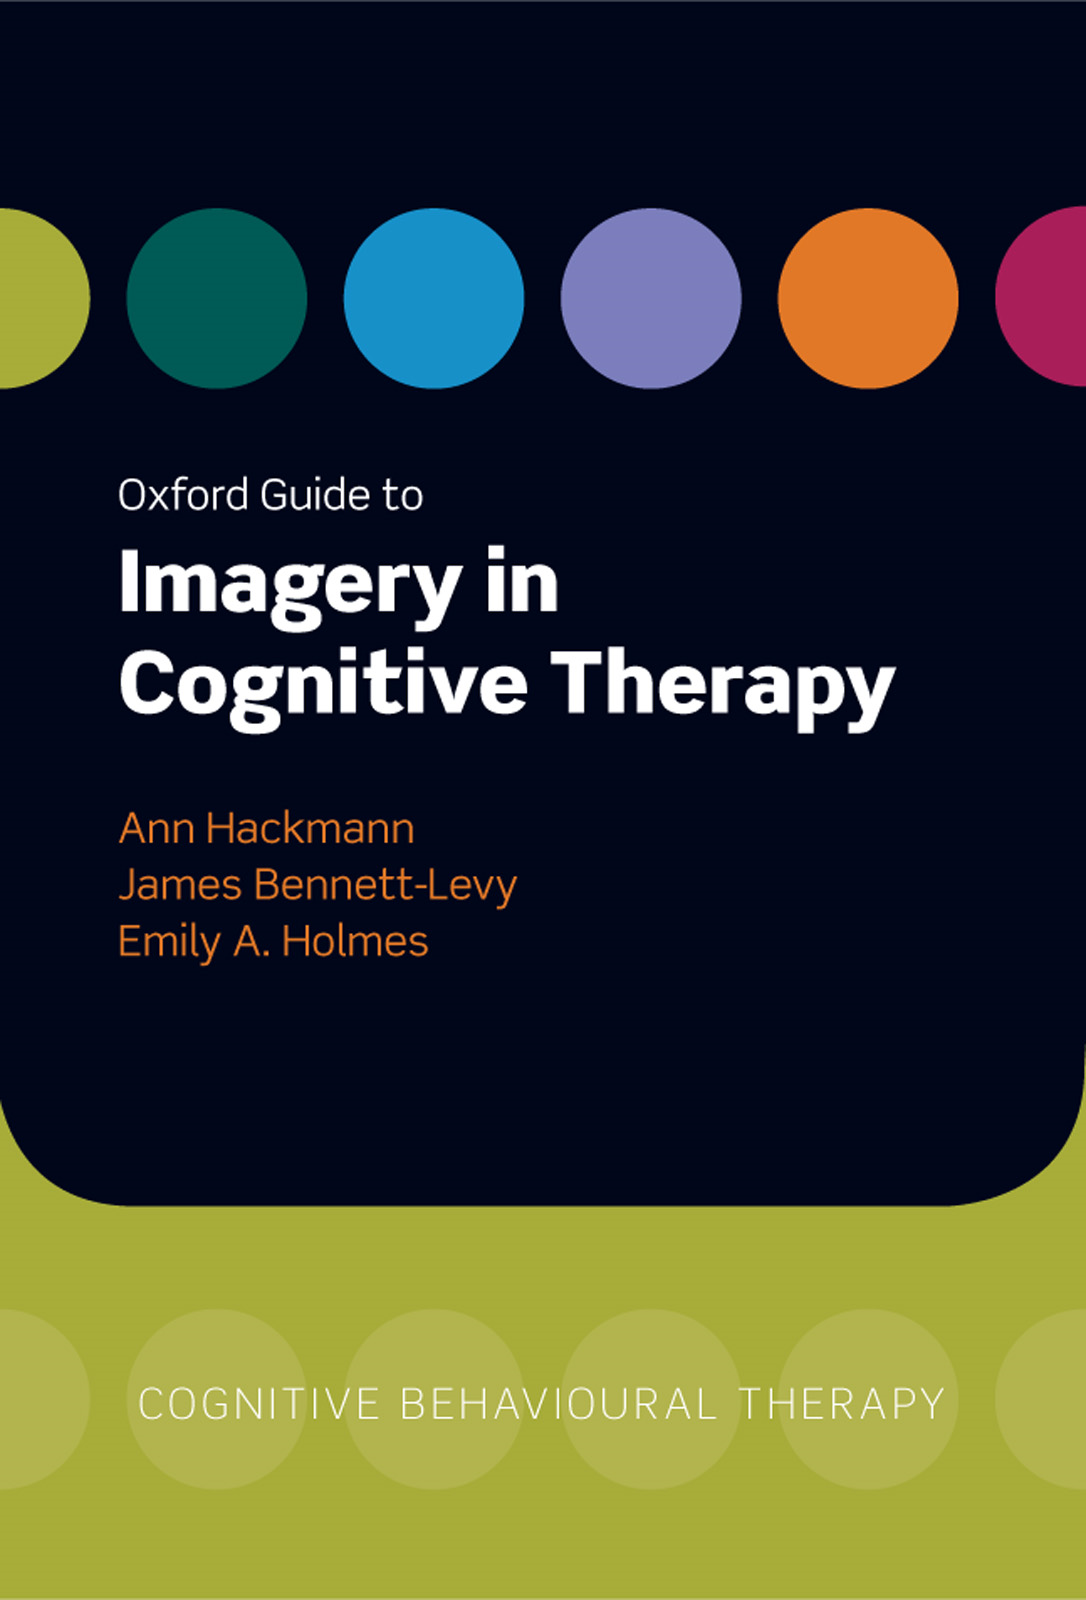 Oxford Guide to Imagery in Cognitive Therapy By: Ann Hackmann,Emily A. Holmes,James Bennett-Levy